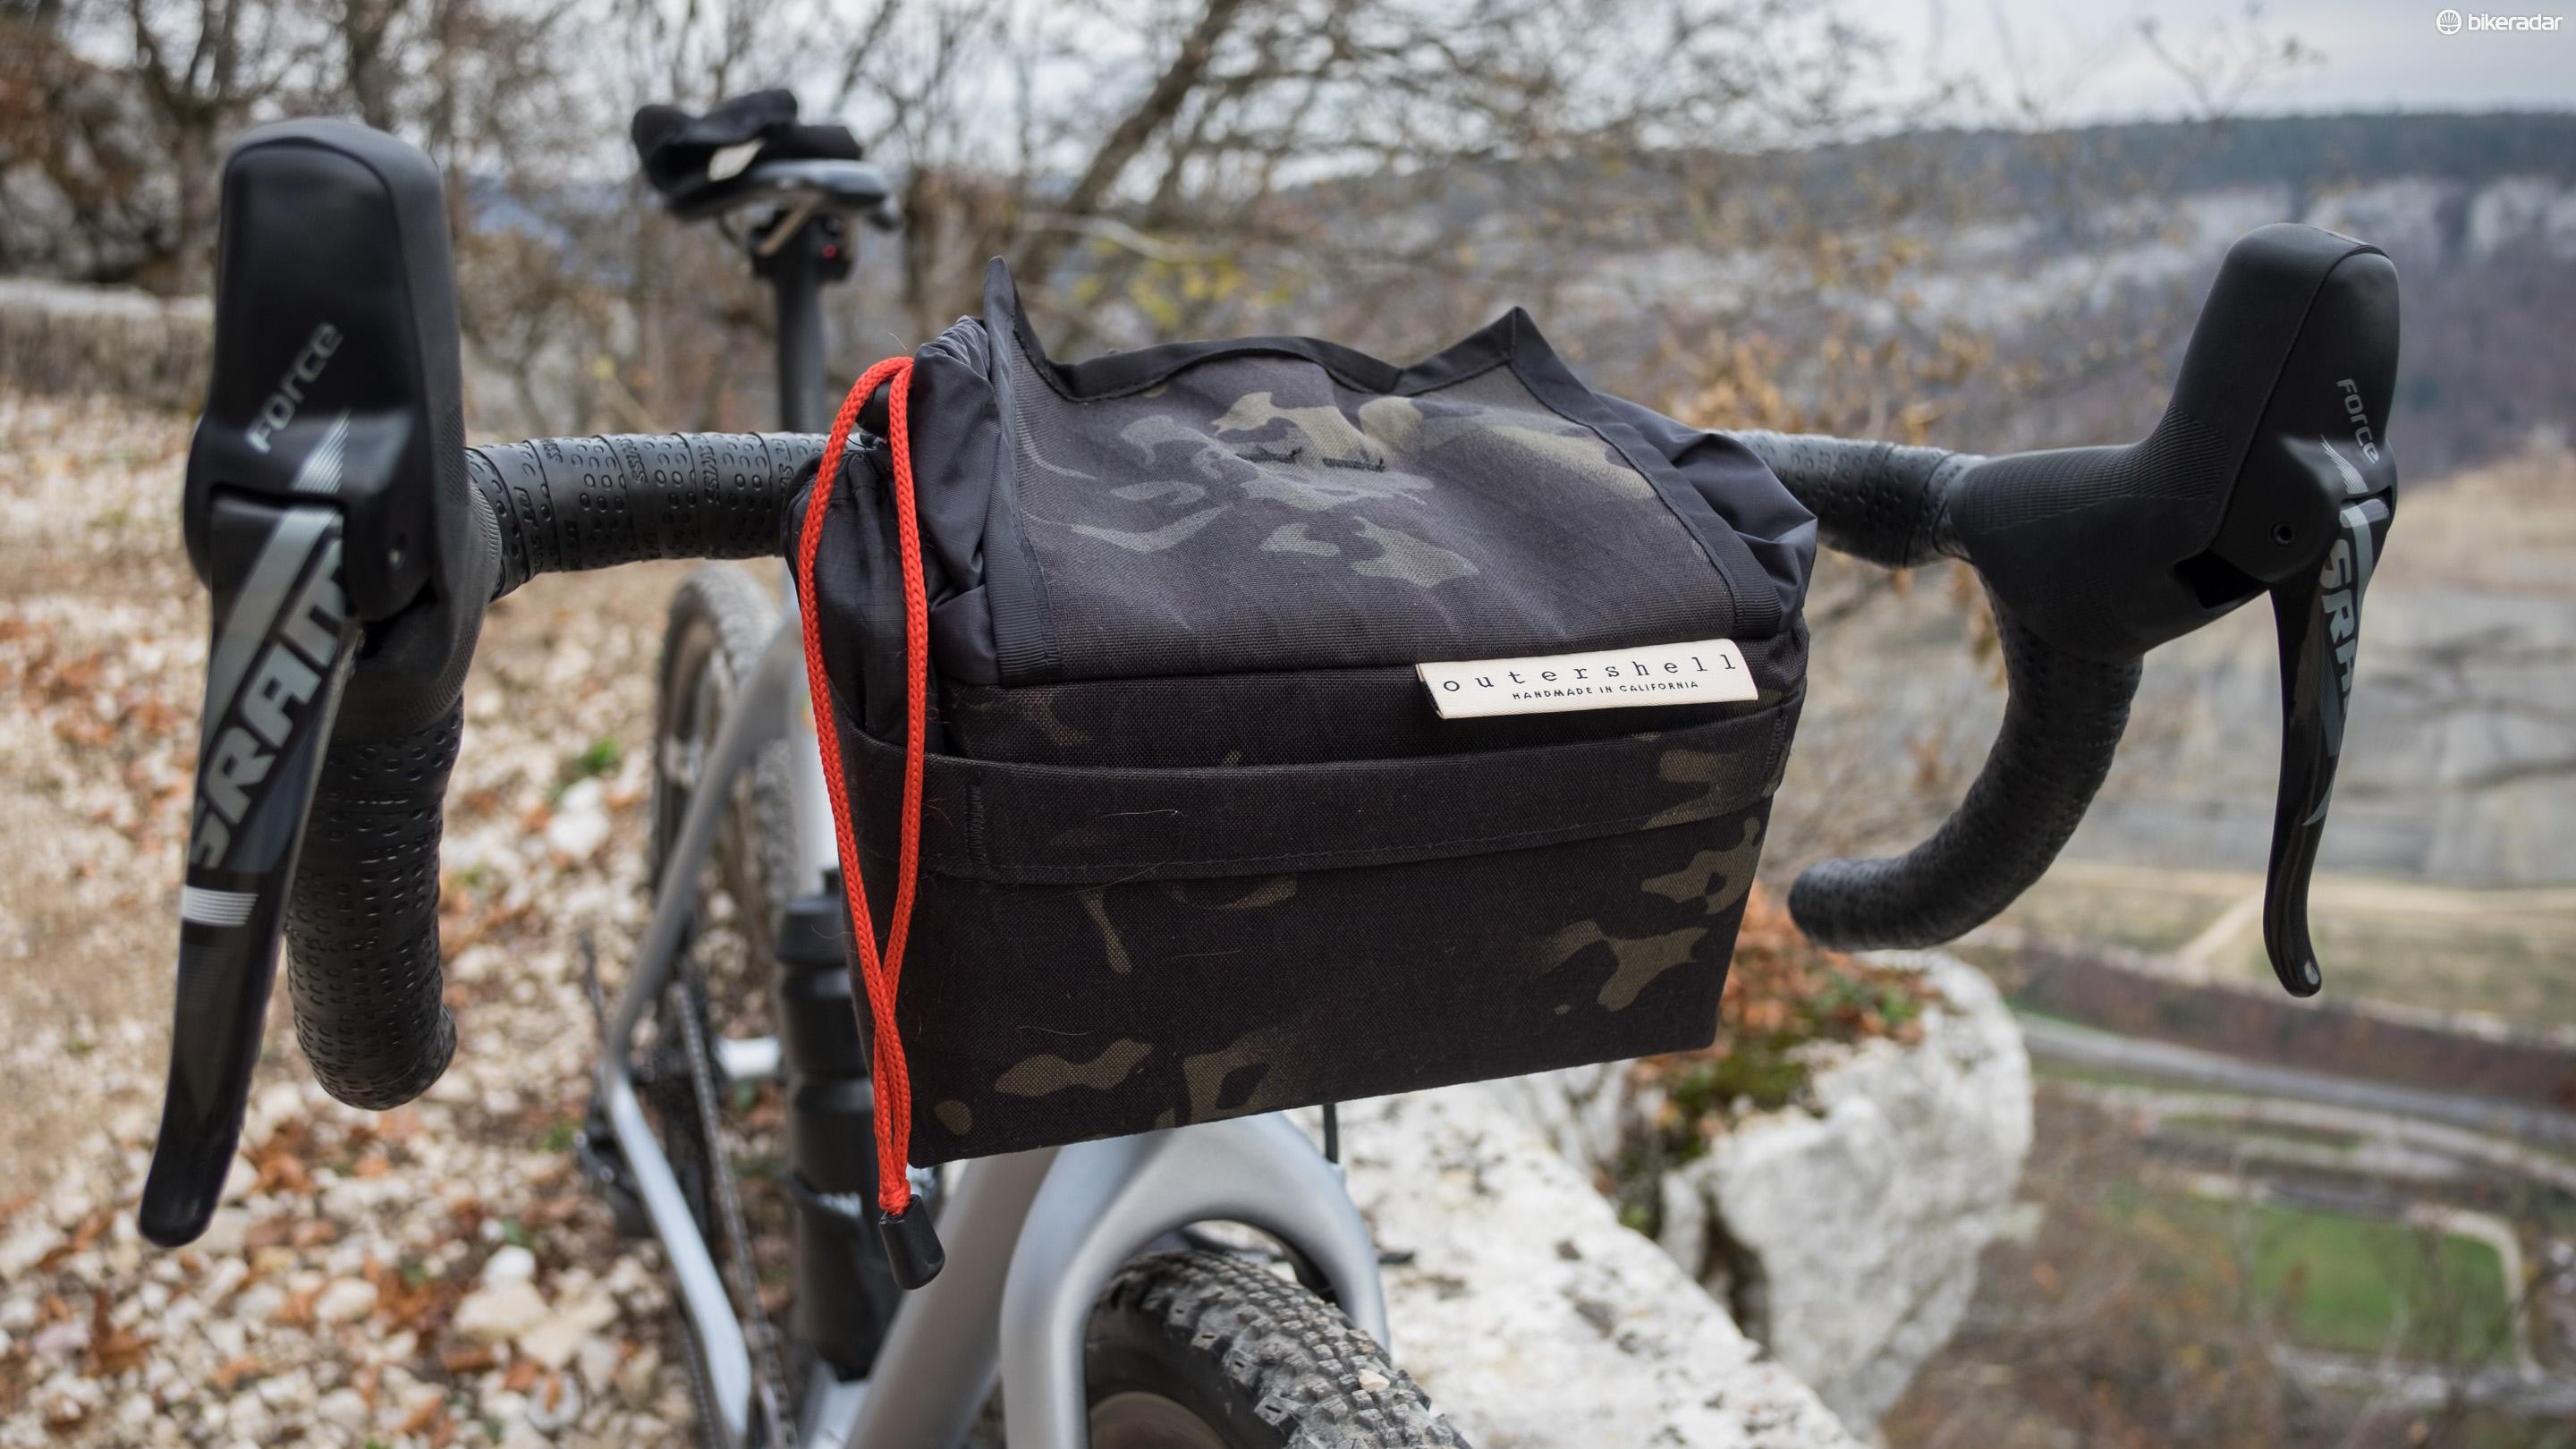 The Outer Shell bar bag is the best piece of bike luggage I've used